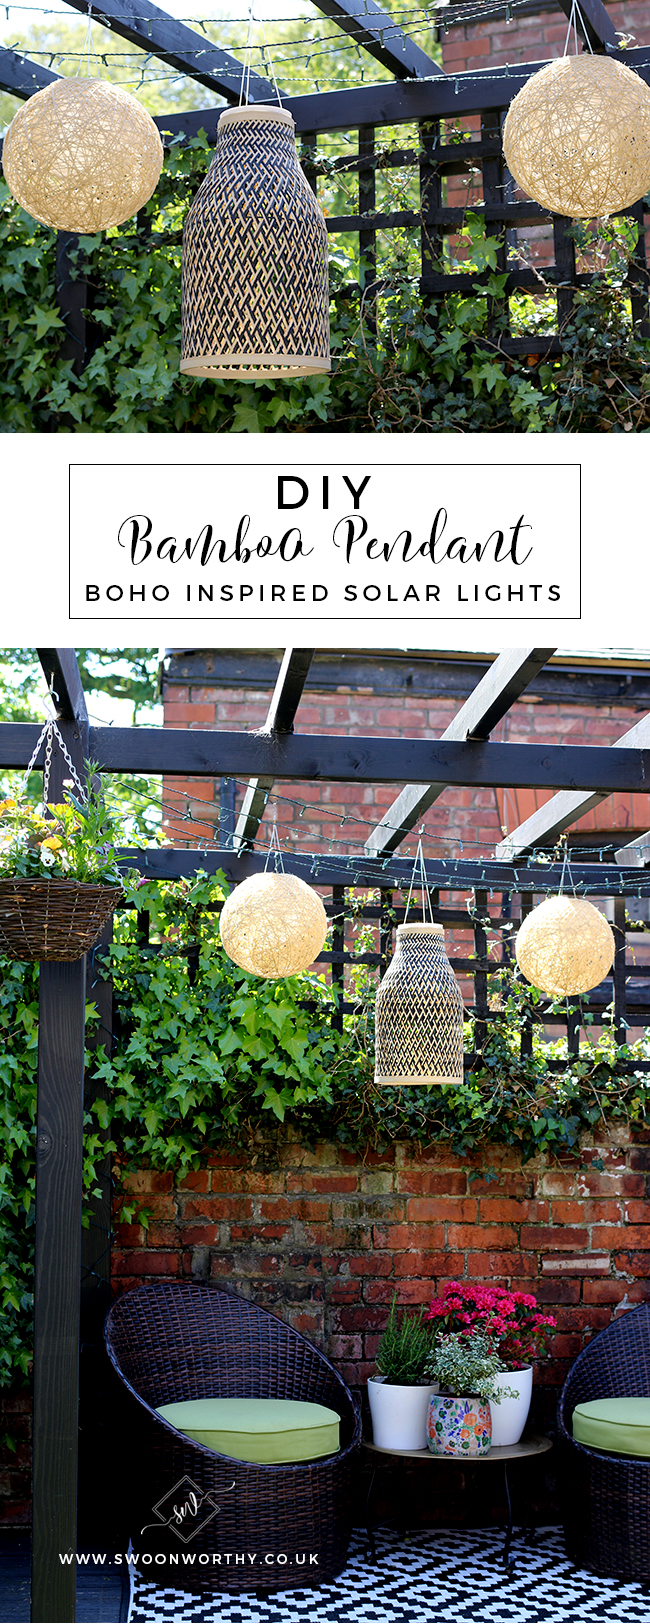 Looking to add a bohemian vibe to your garden for summer? Check out how to create your own bamboo solar lights using my super simple DIY!